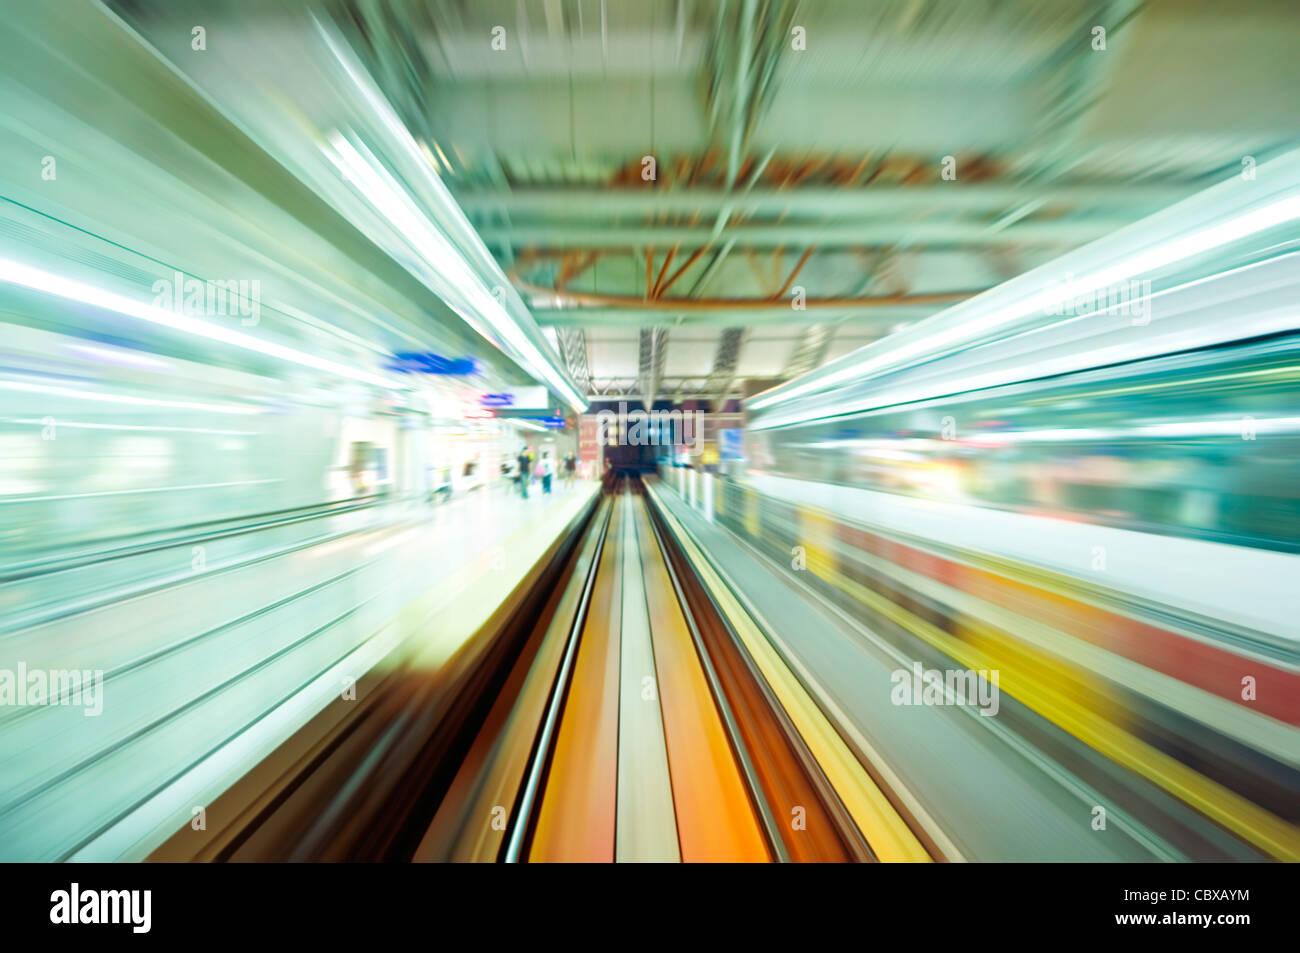 Abstract of fast train passing station with motion blur - Stock Image